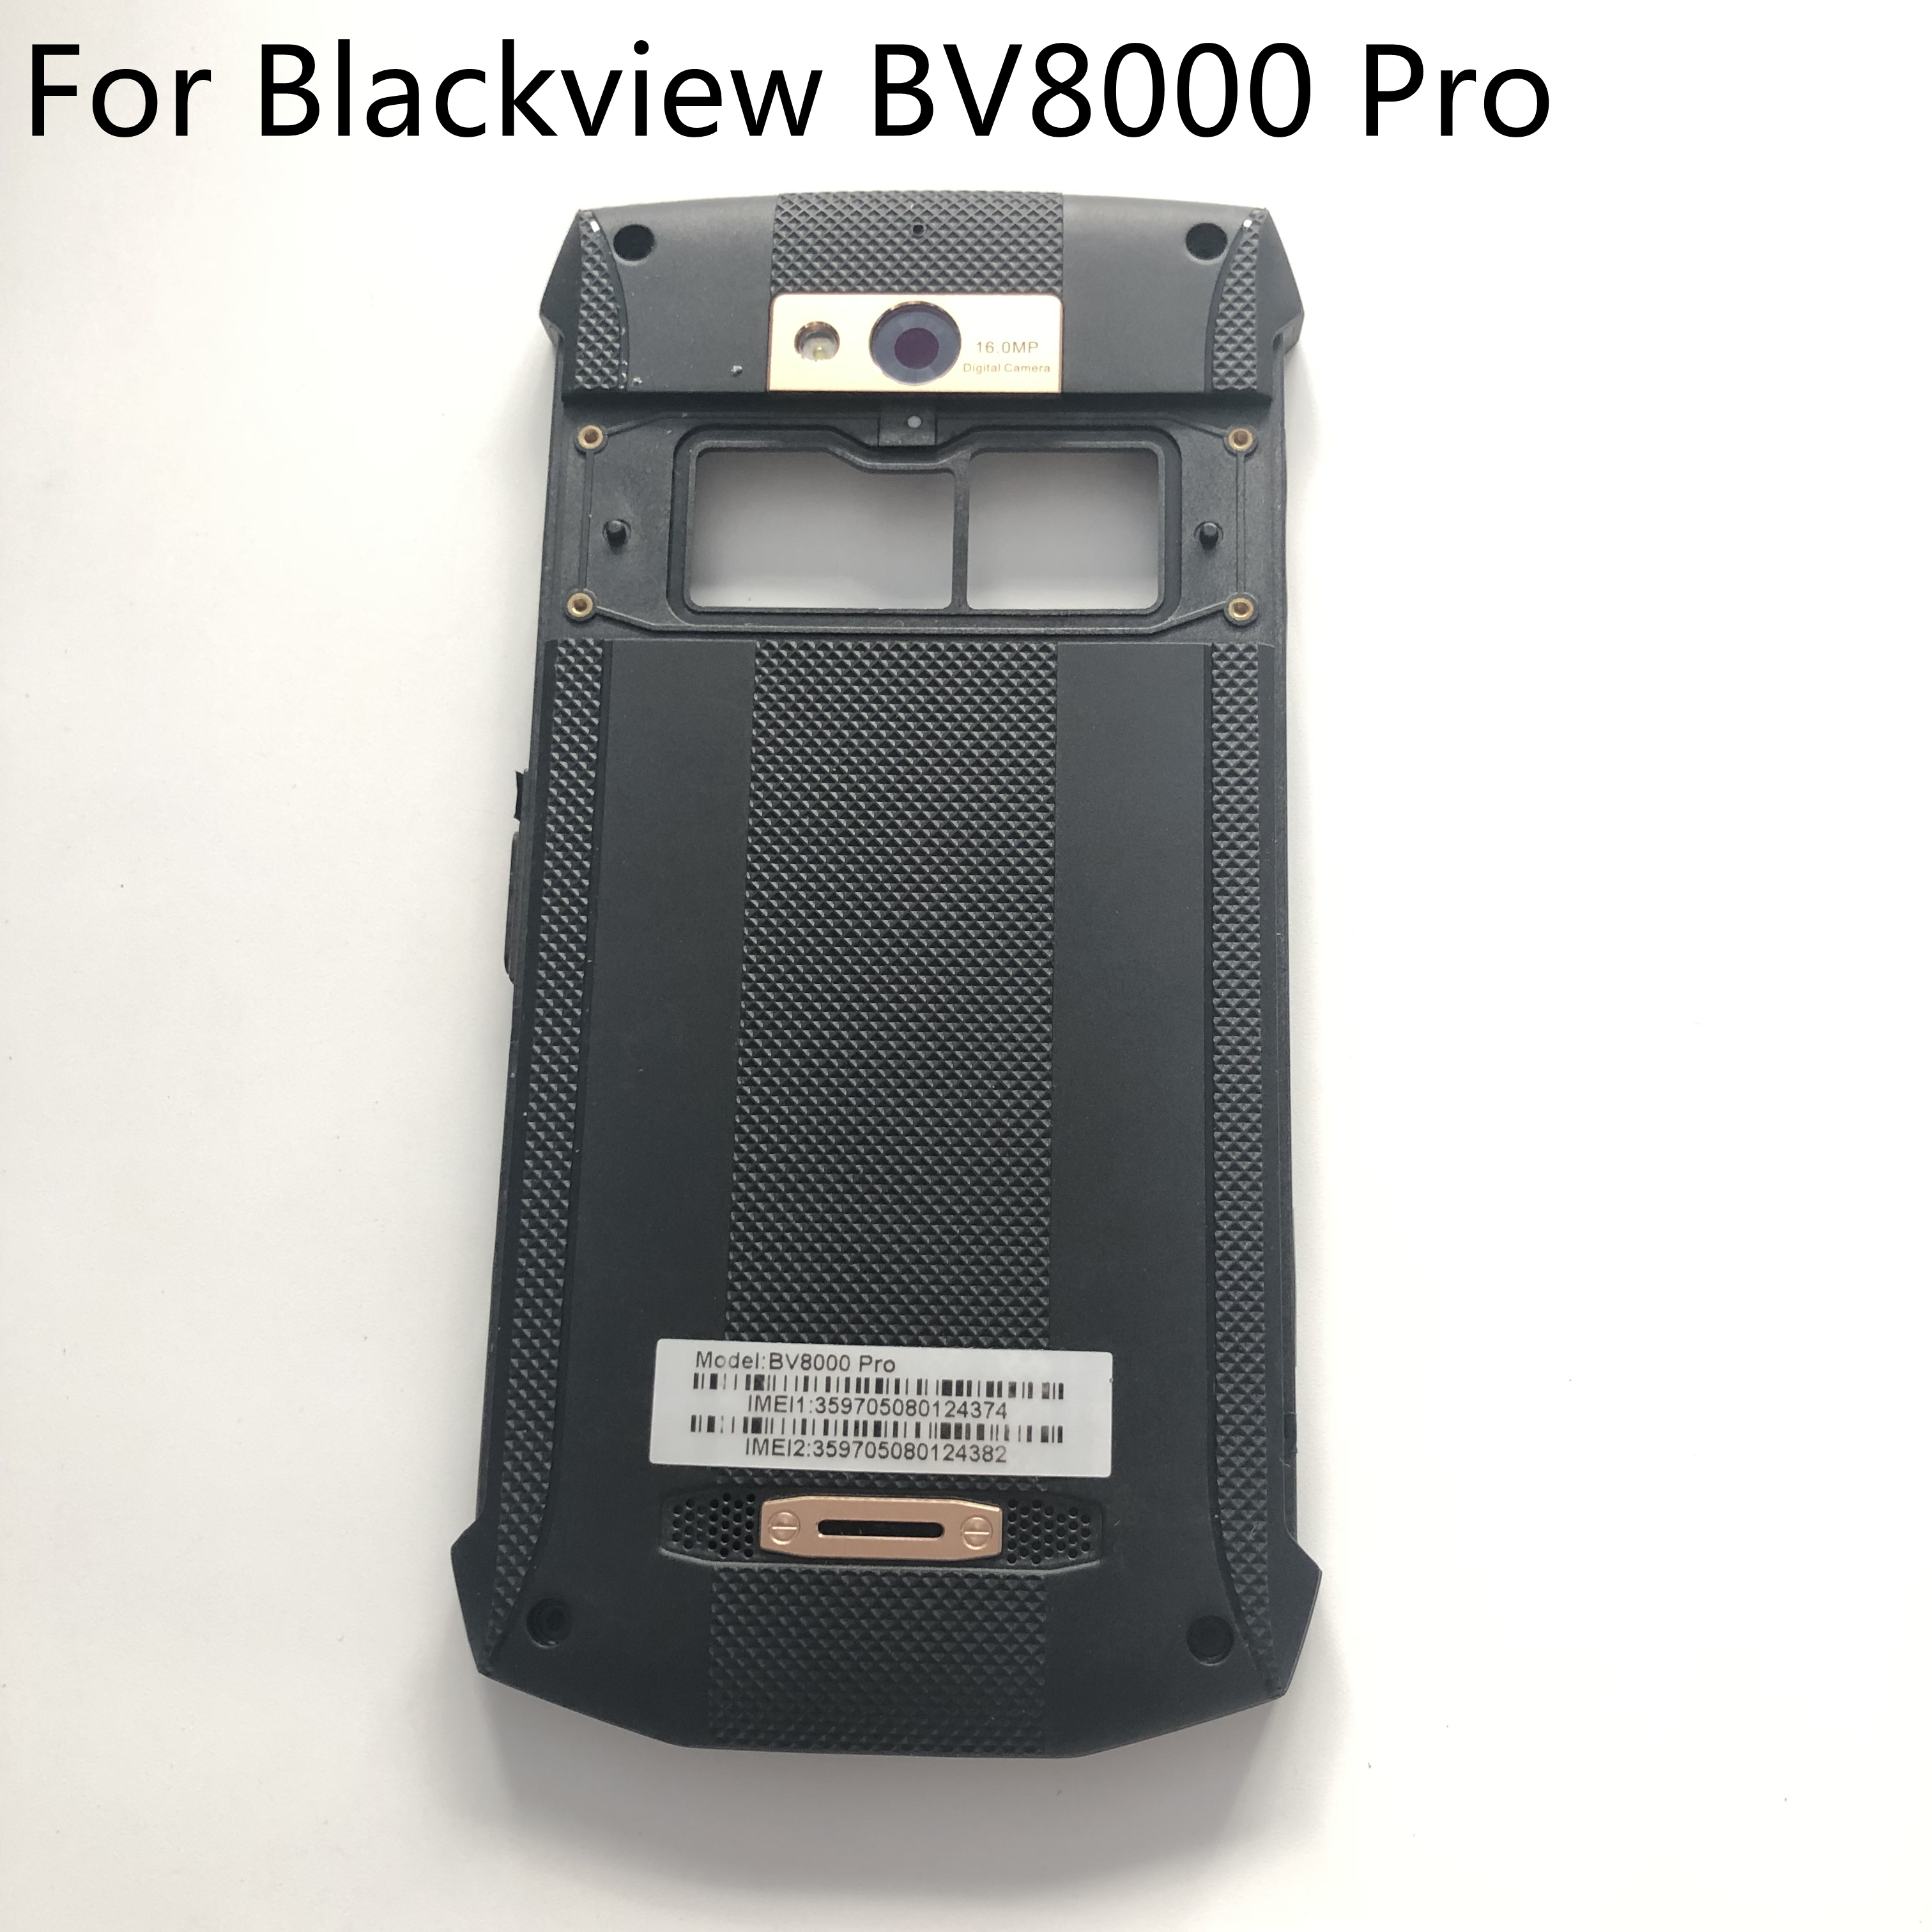 Blackview BV8000 Pro New Original Protective Battery Case Cover Back Shell For MT6757 5.0 Inch Smartphone